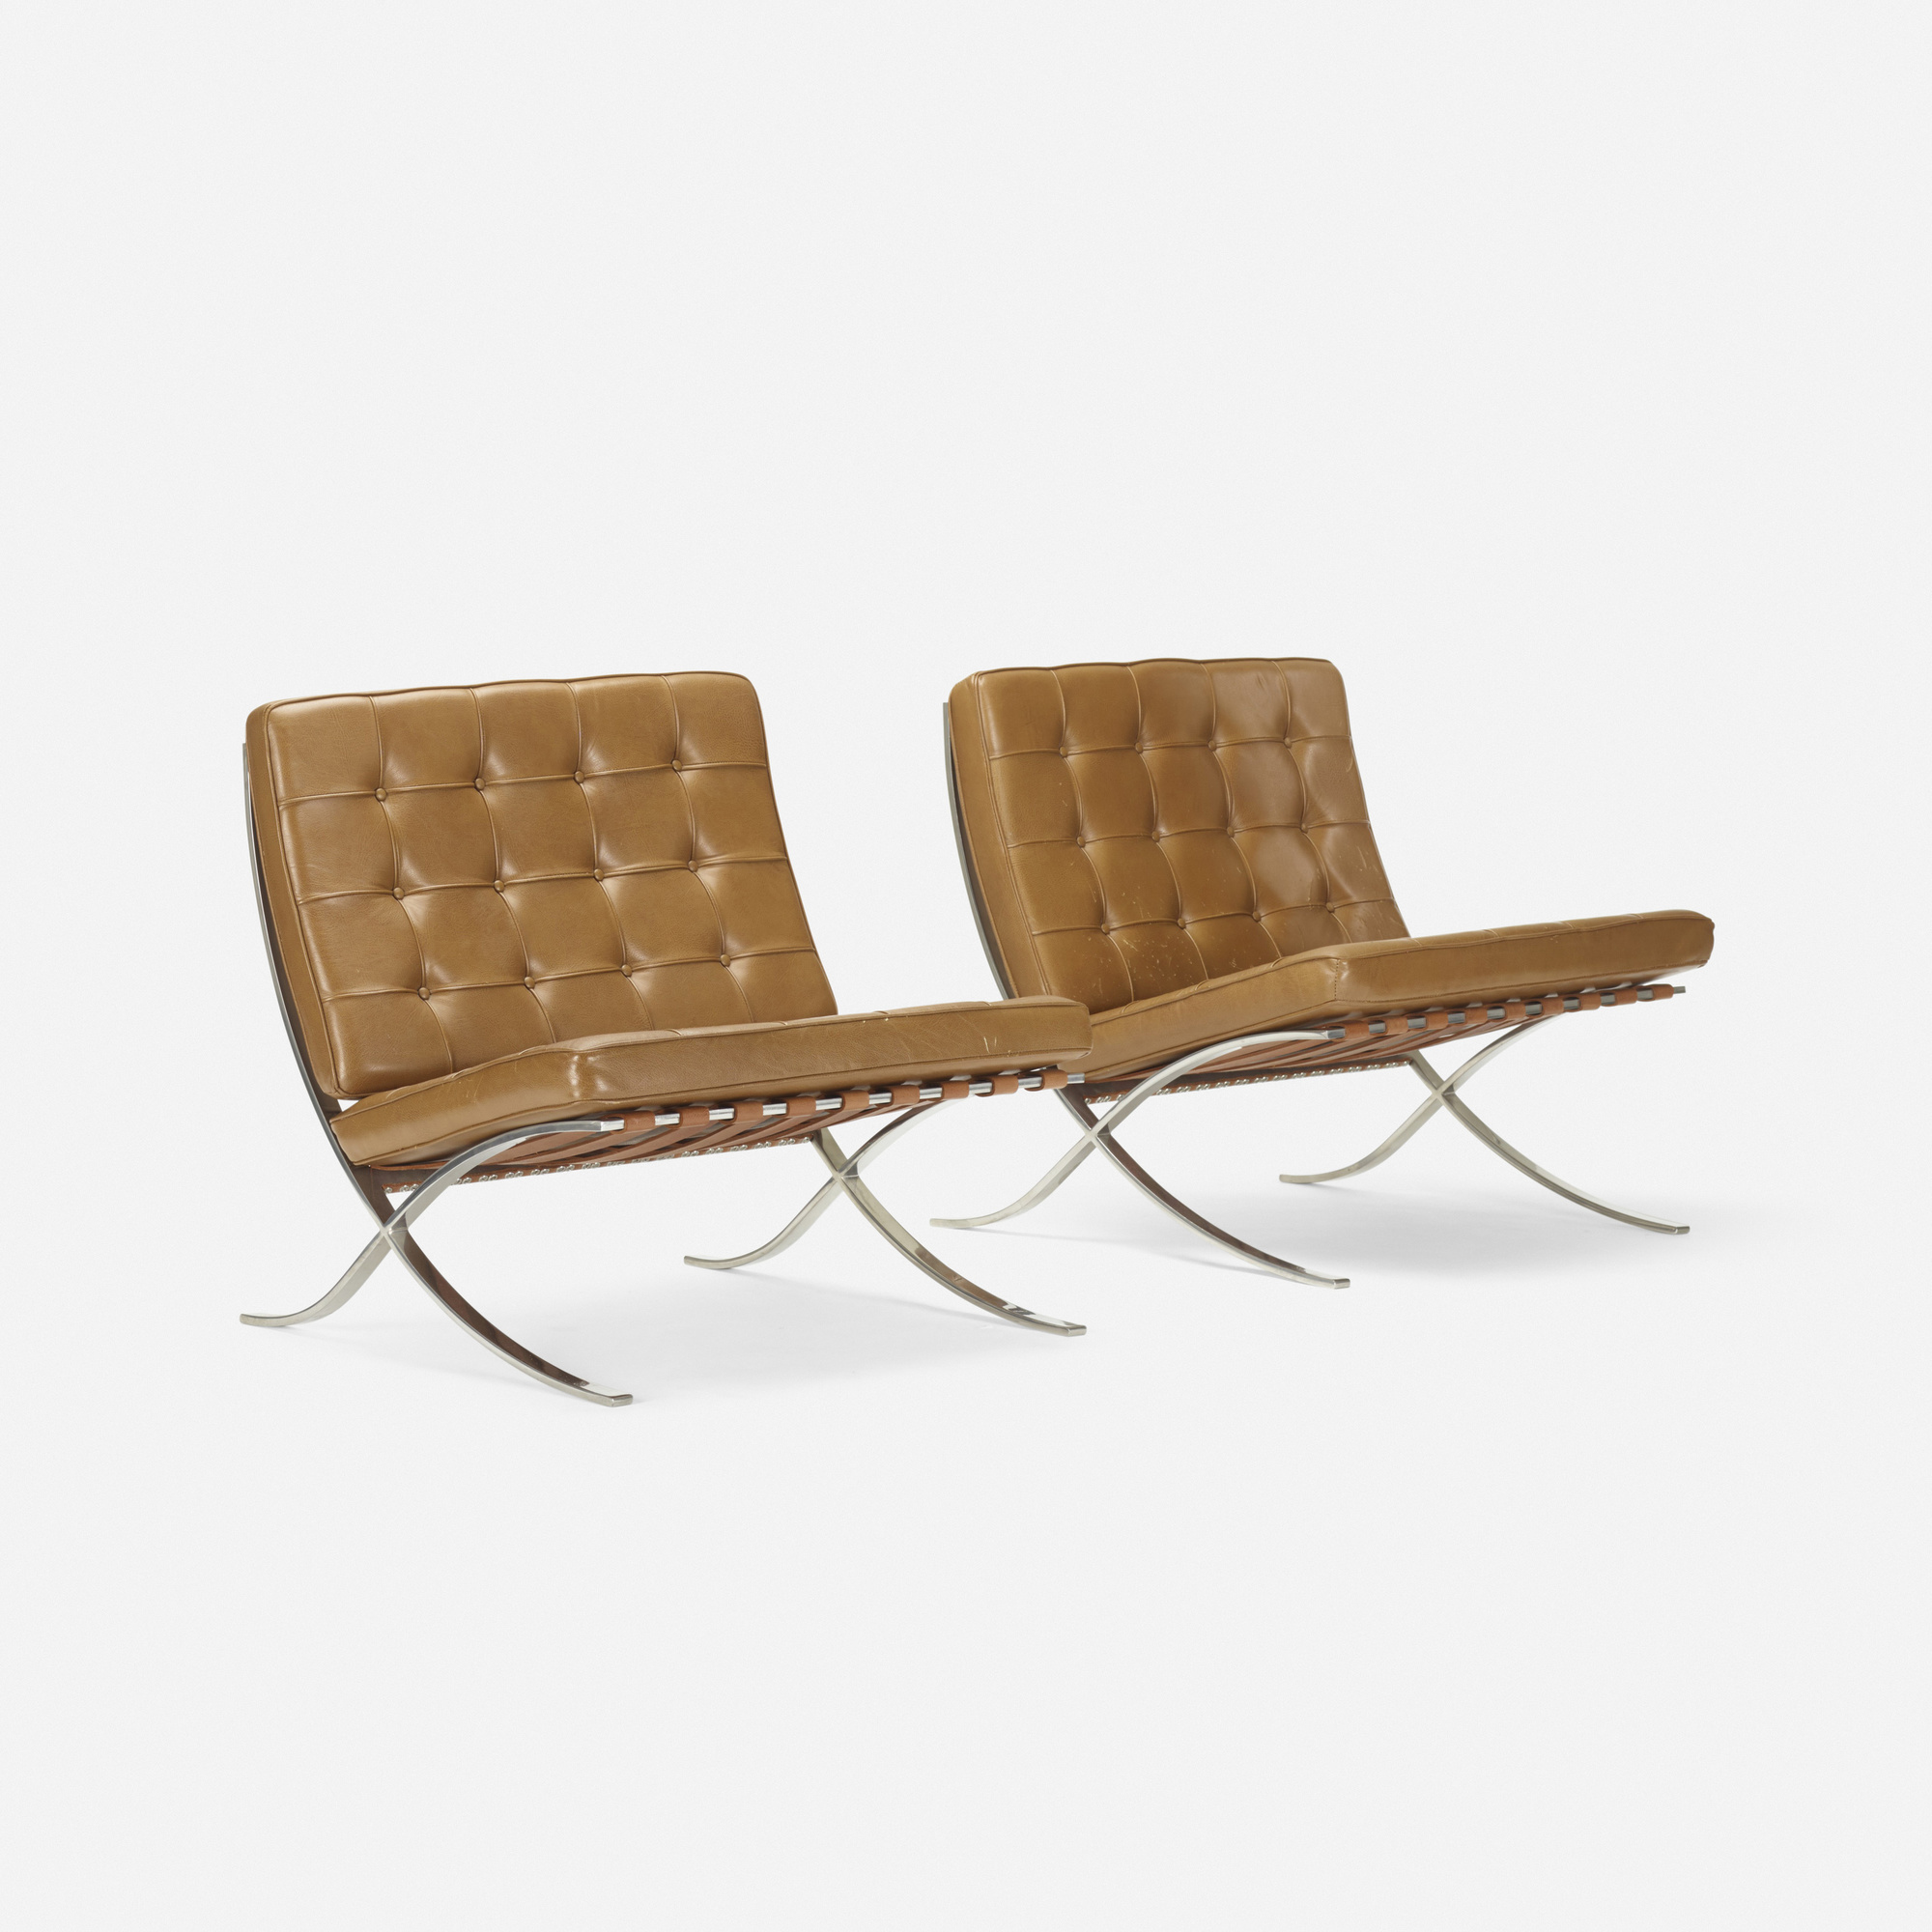 313 Ludwig Mies Van Der Rohe Barcelona Chairs Pair 2 Of